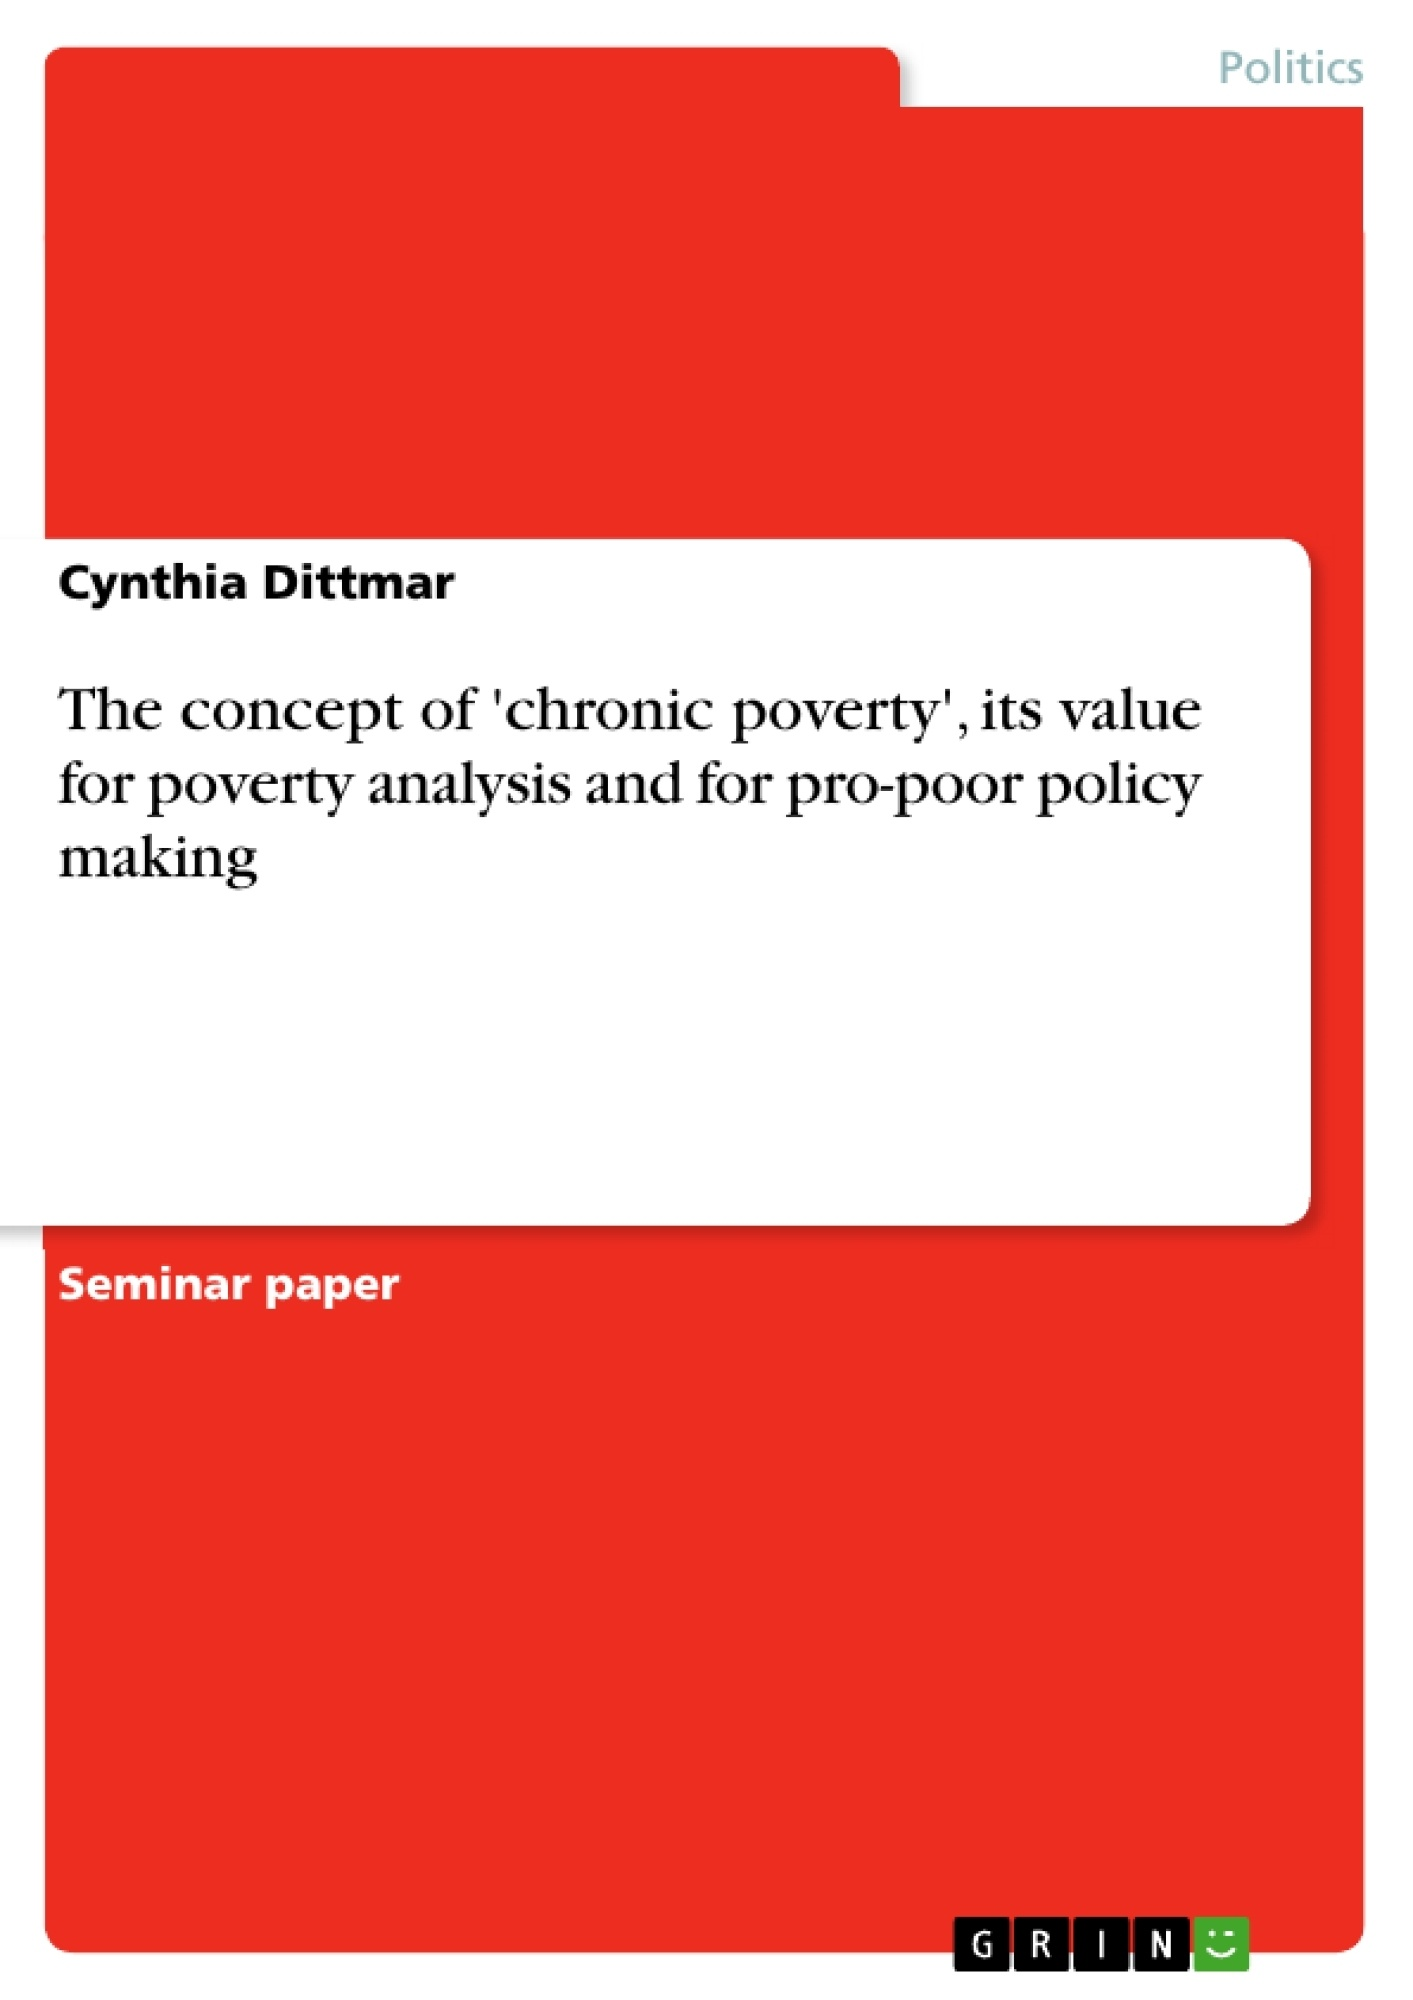 Title: The concept of 'chronic poverty', its value for poverty analysis and for pro-poor policy making